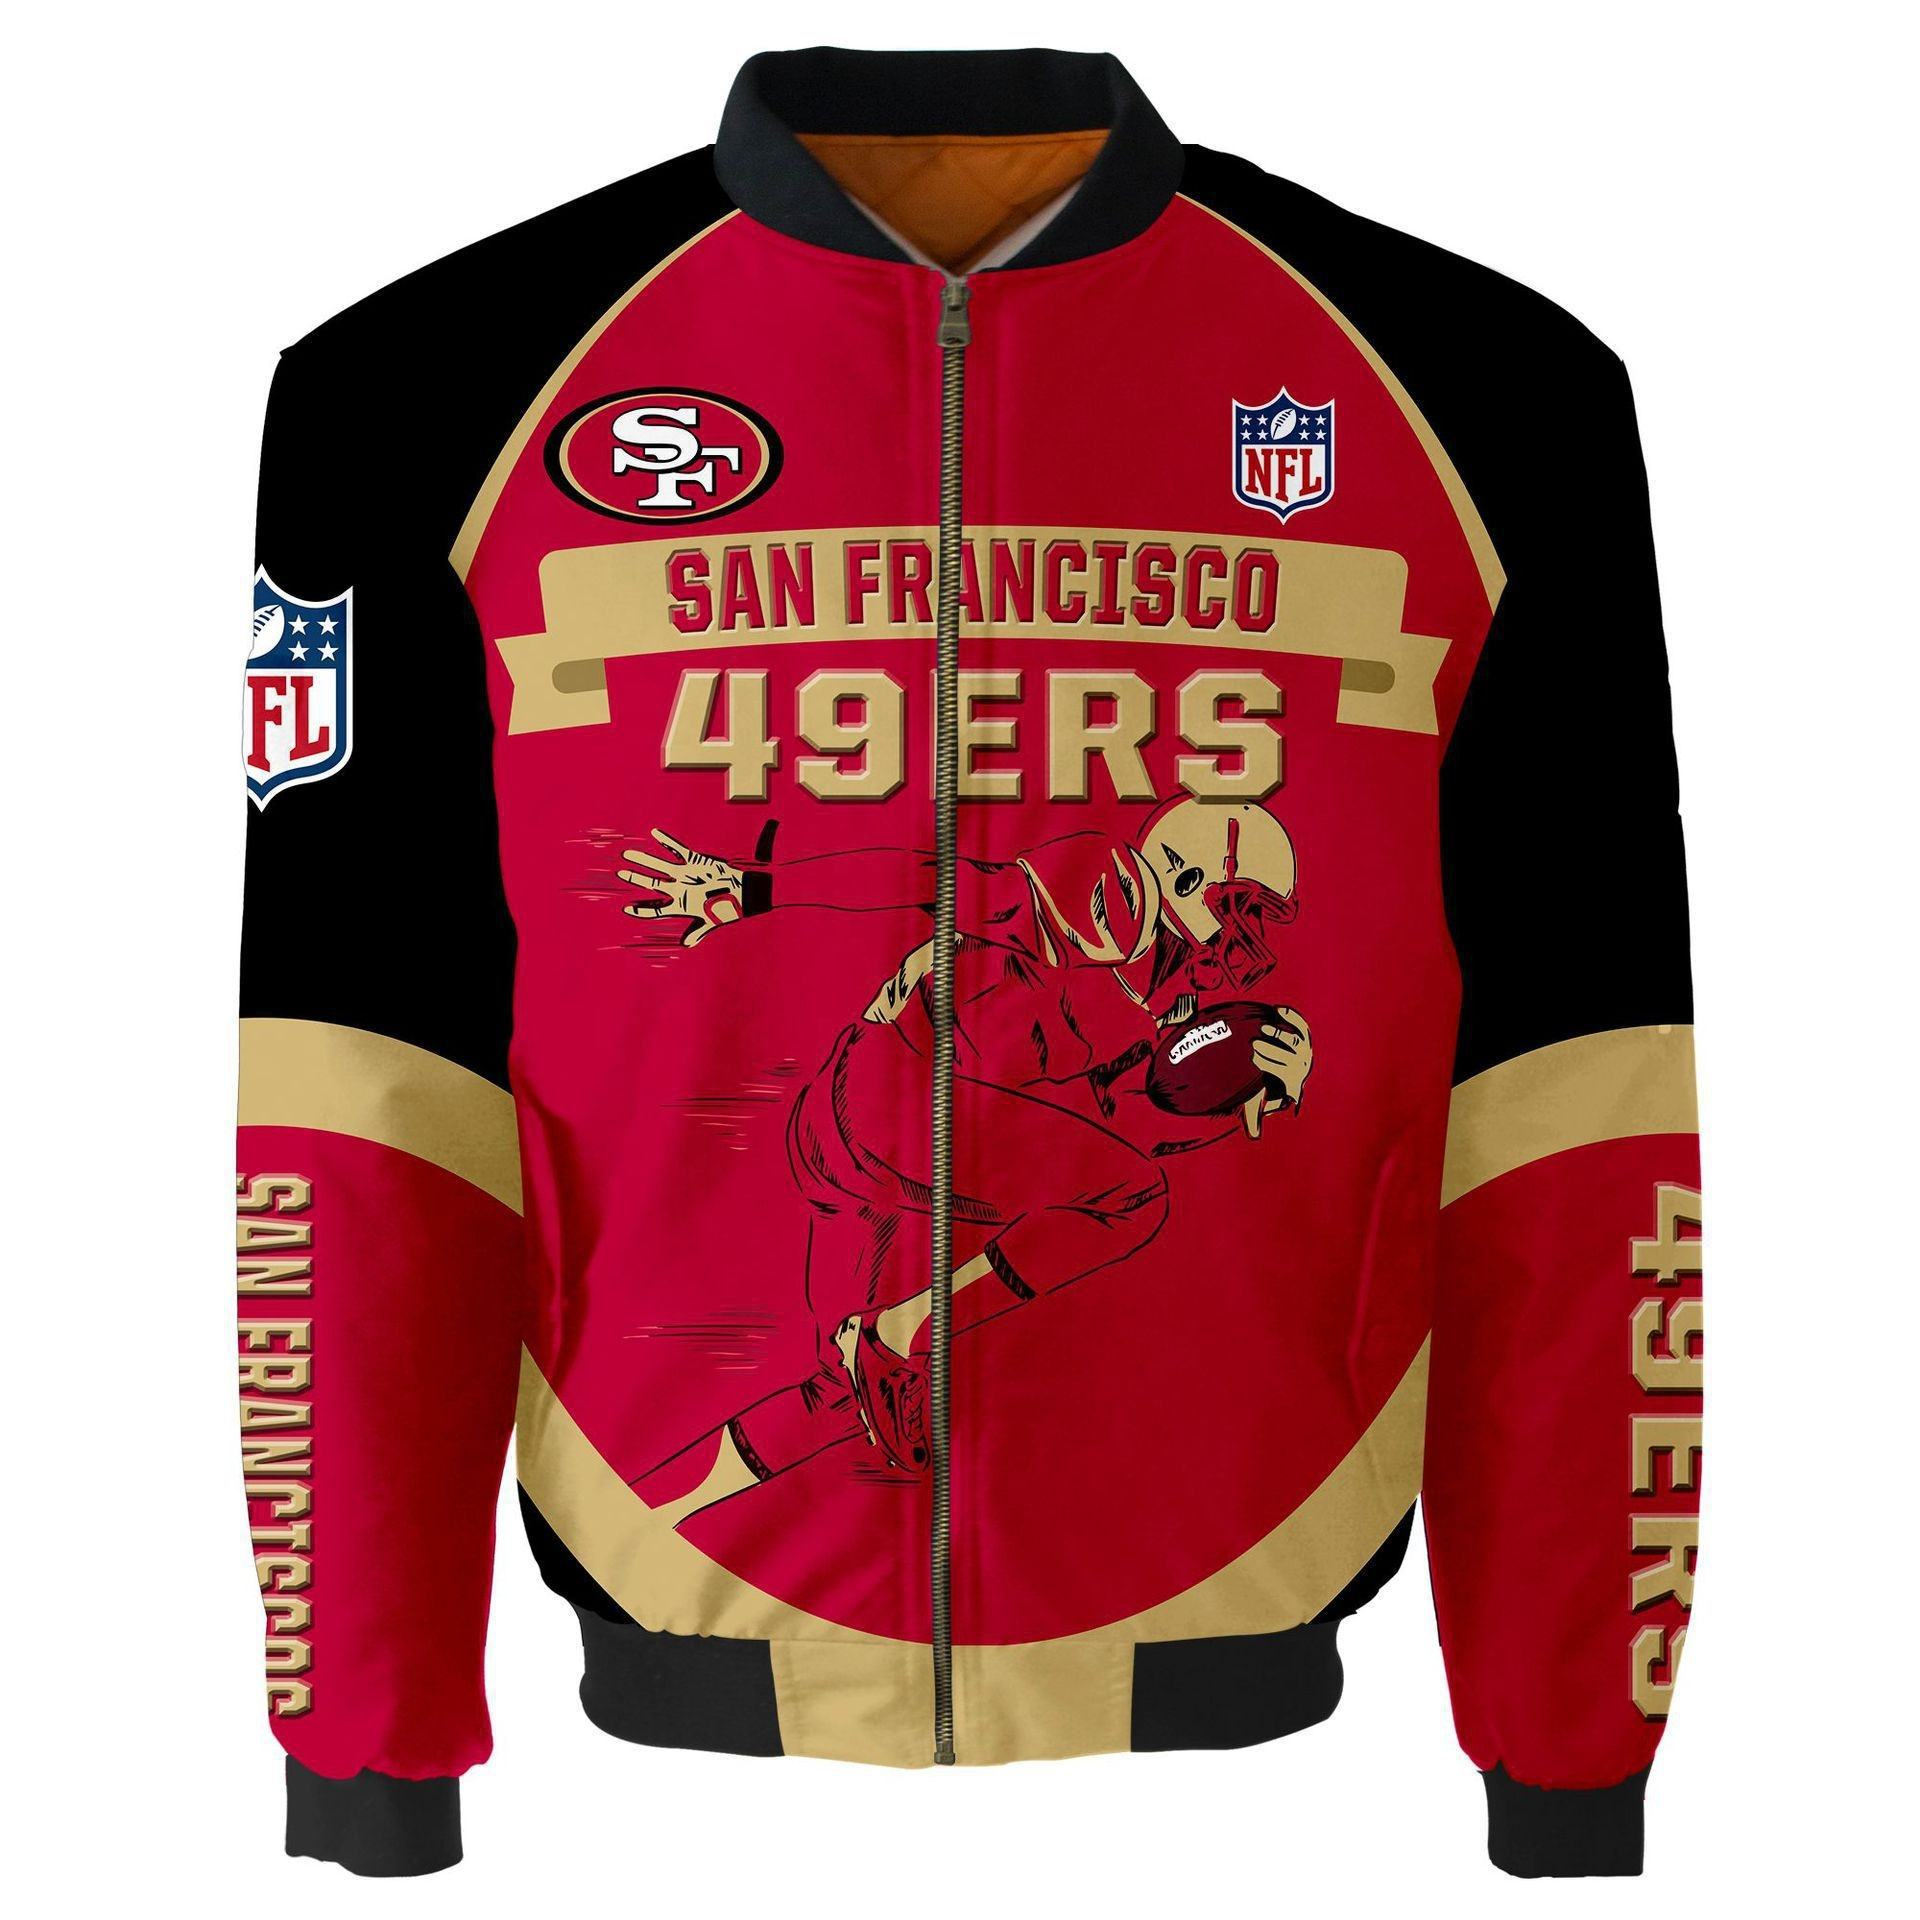 Wish Aliexpress sells NFL All-Star football sports jackets and cotton men's flying jackets on ebay GP2022831BK